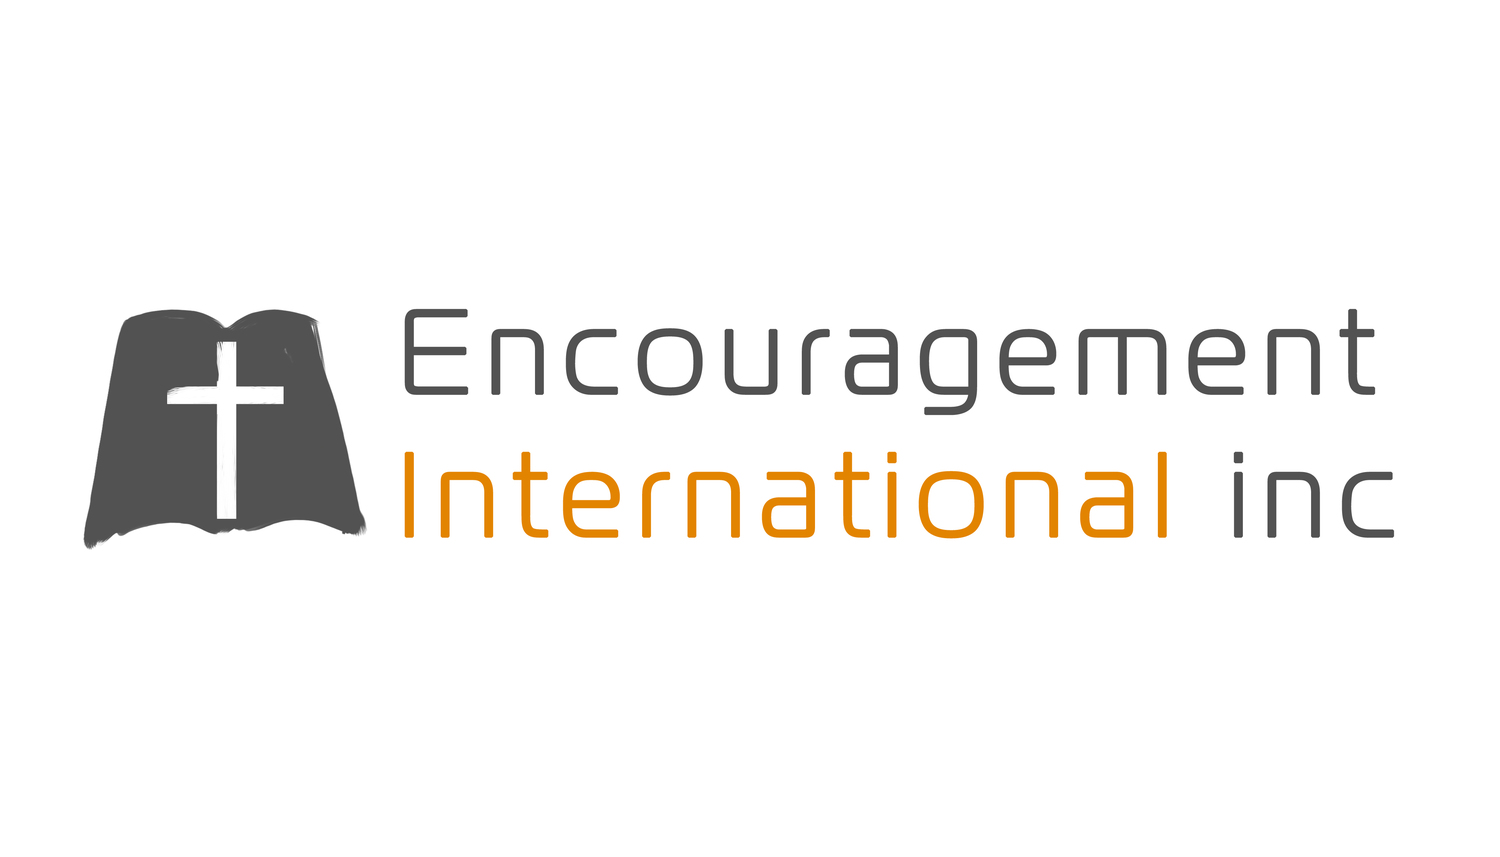 Encouragement International, Inc.